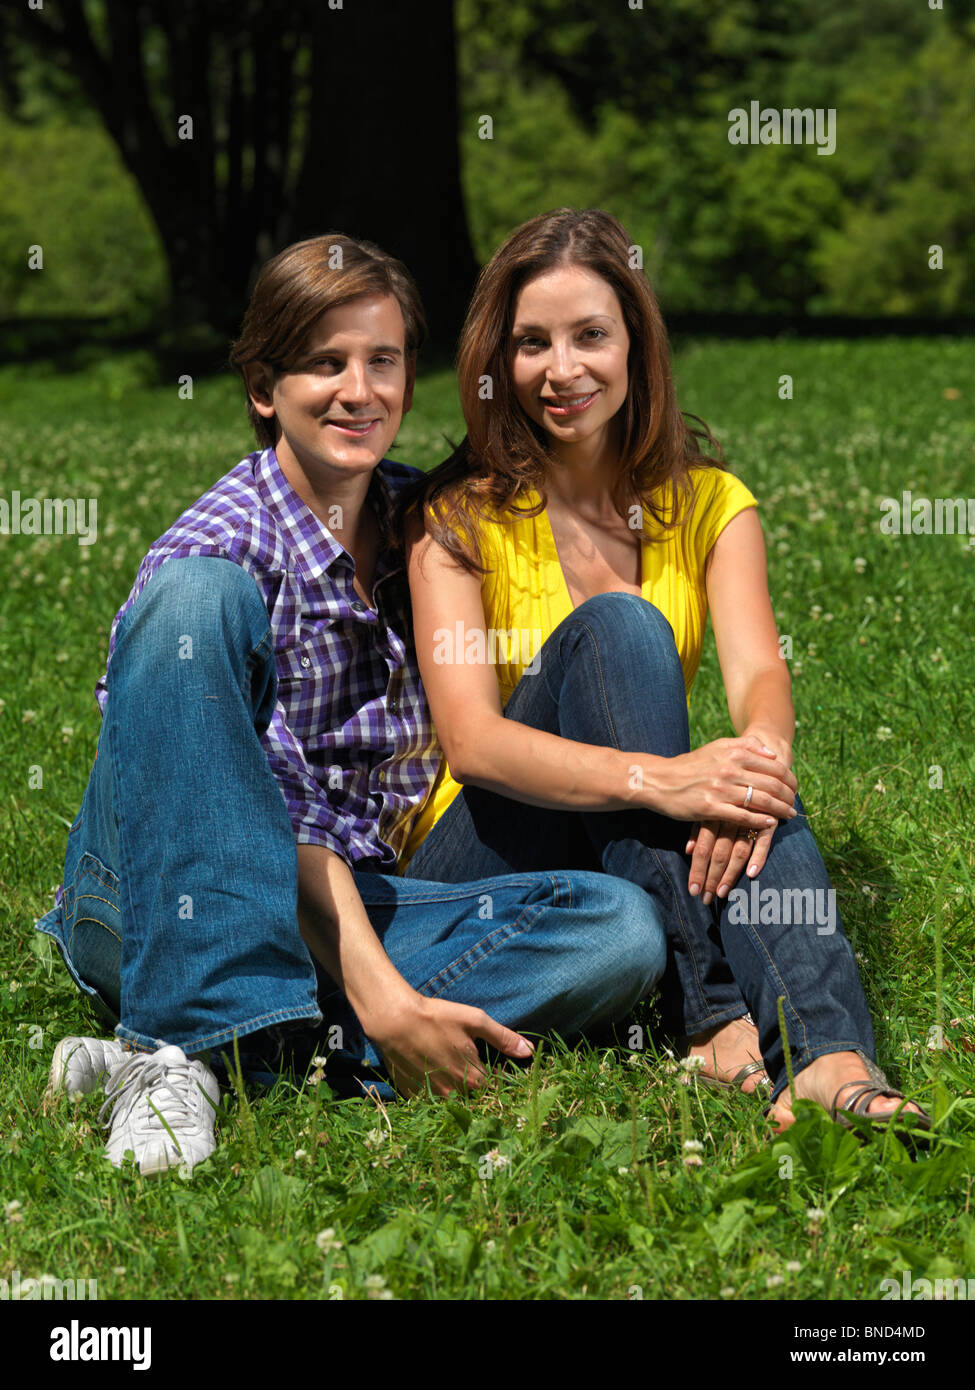 Young happy smiling couple in their early thirties sitting on grass in a park Stock Photo